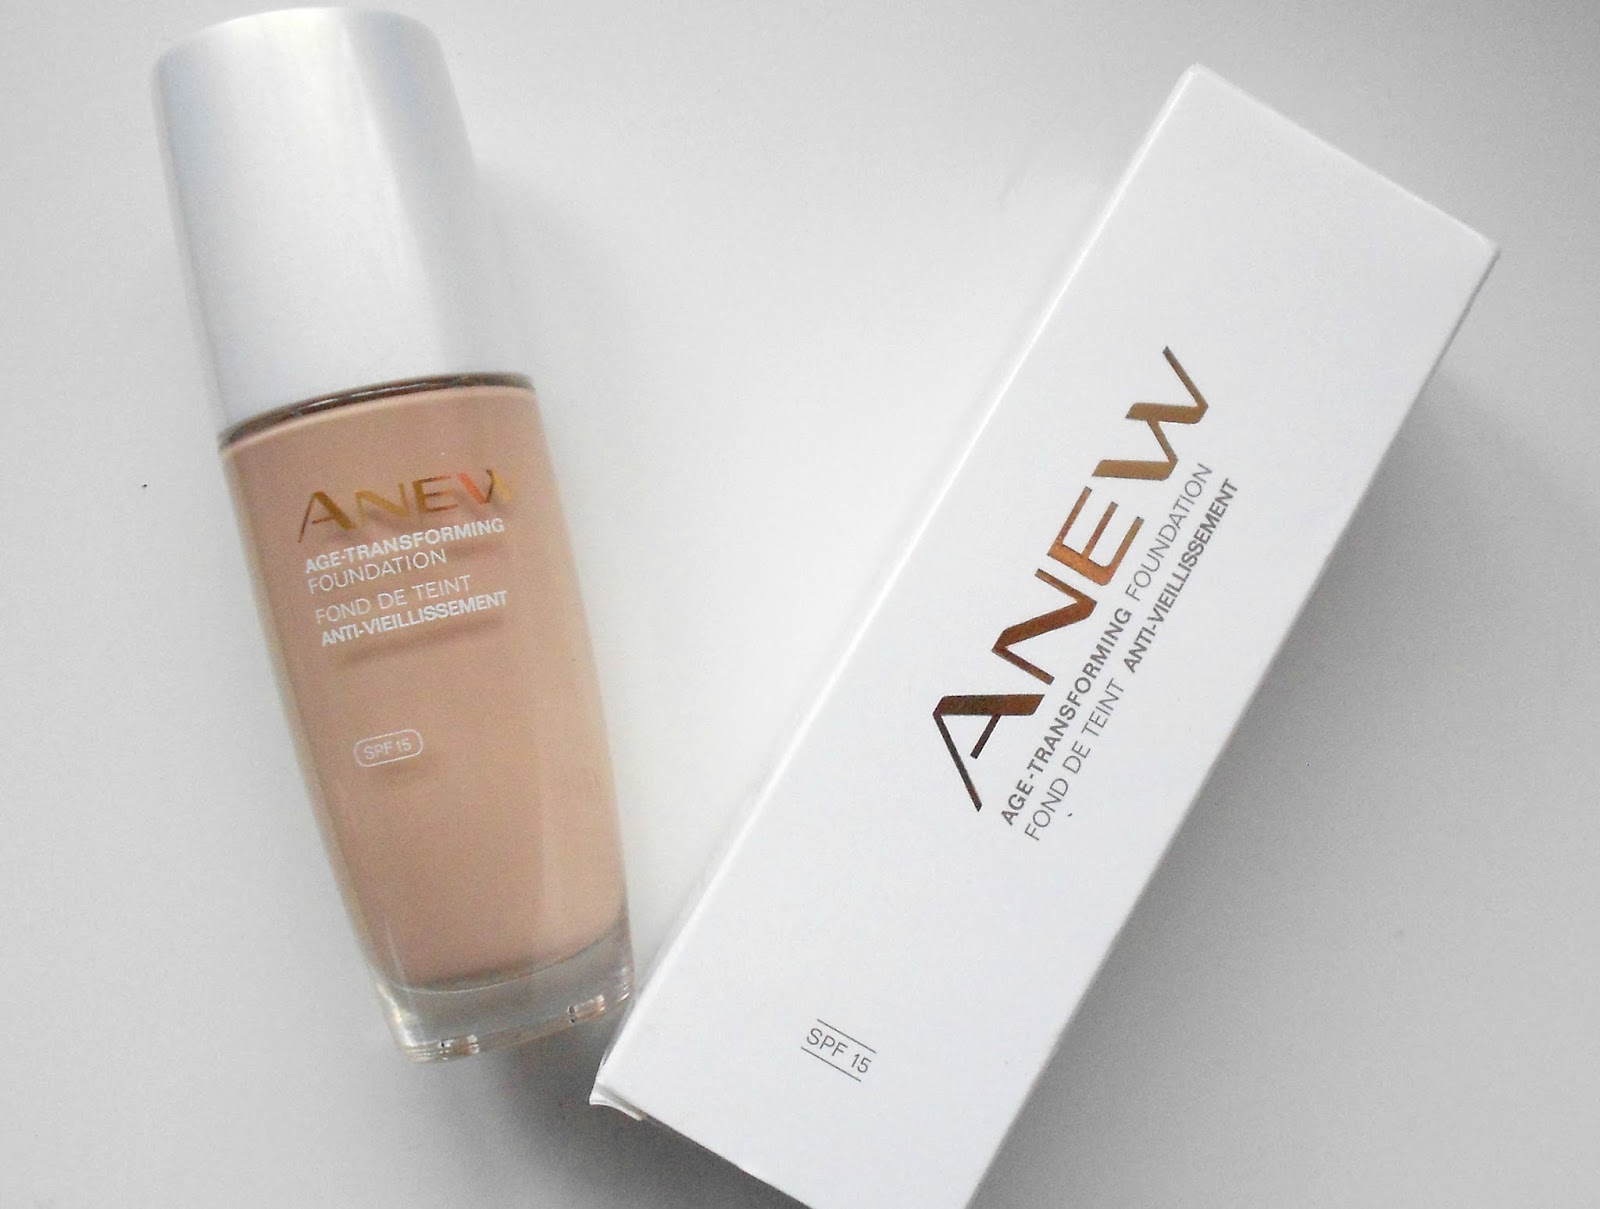 anew-age-transforming-foundation-review-avon